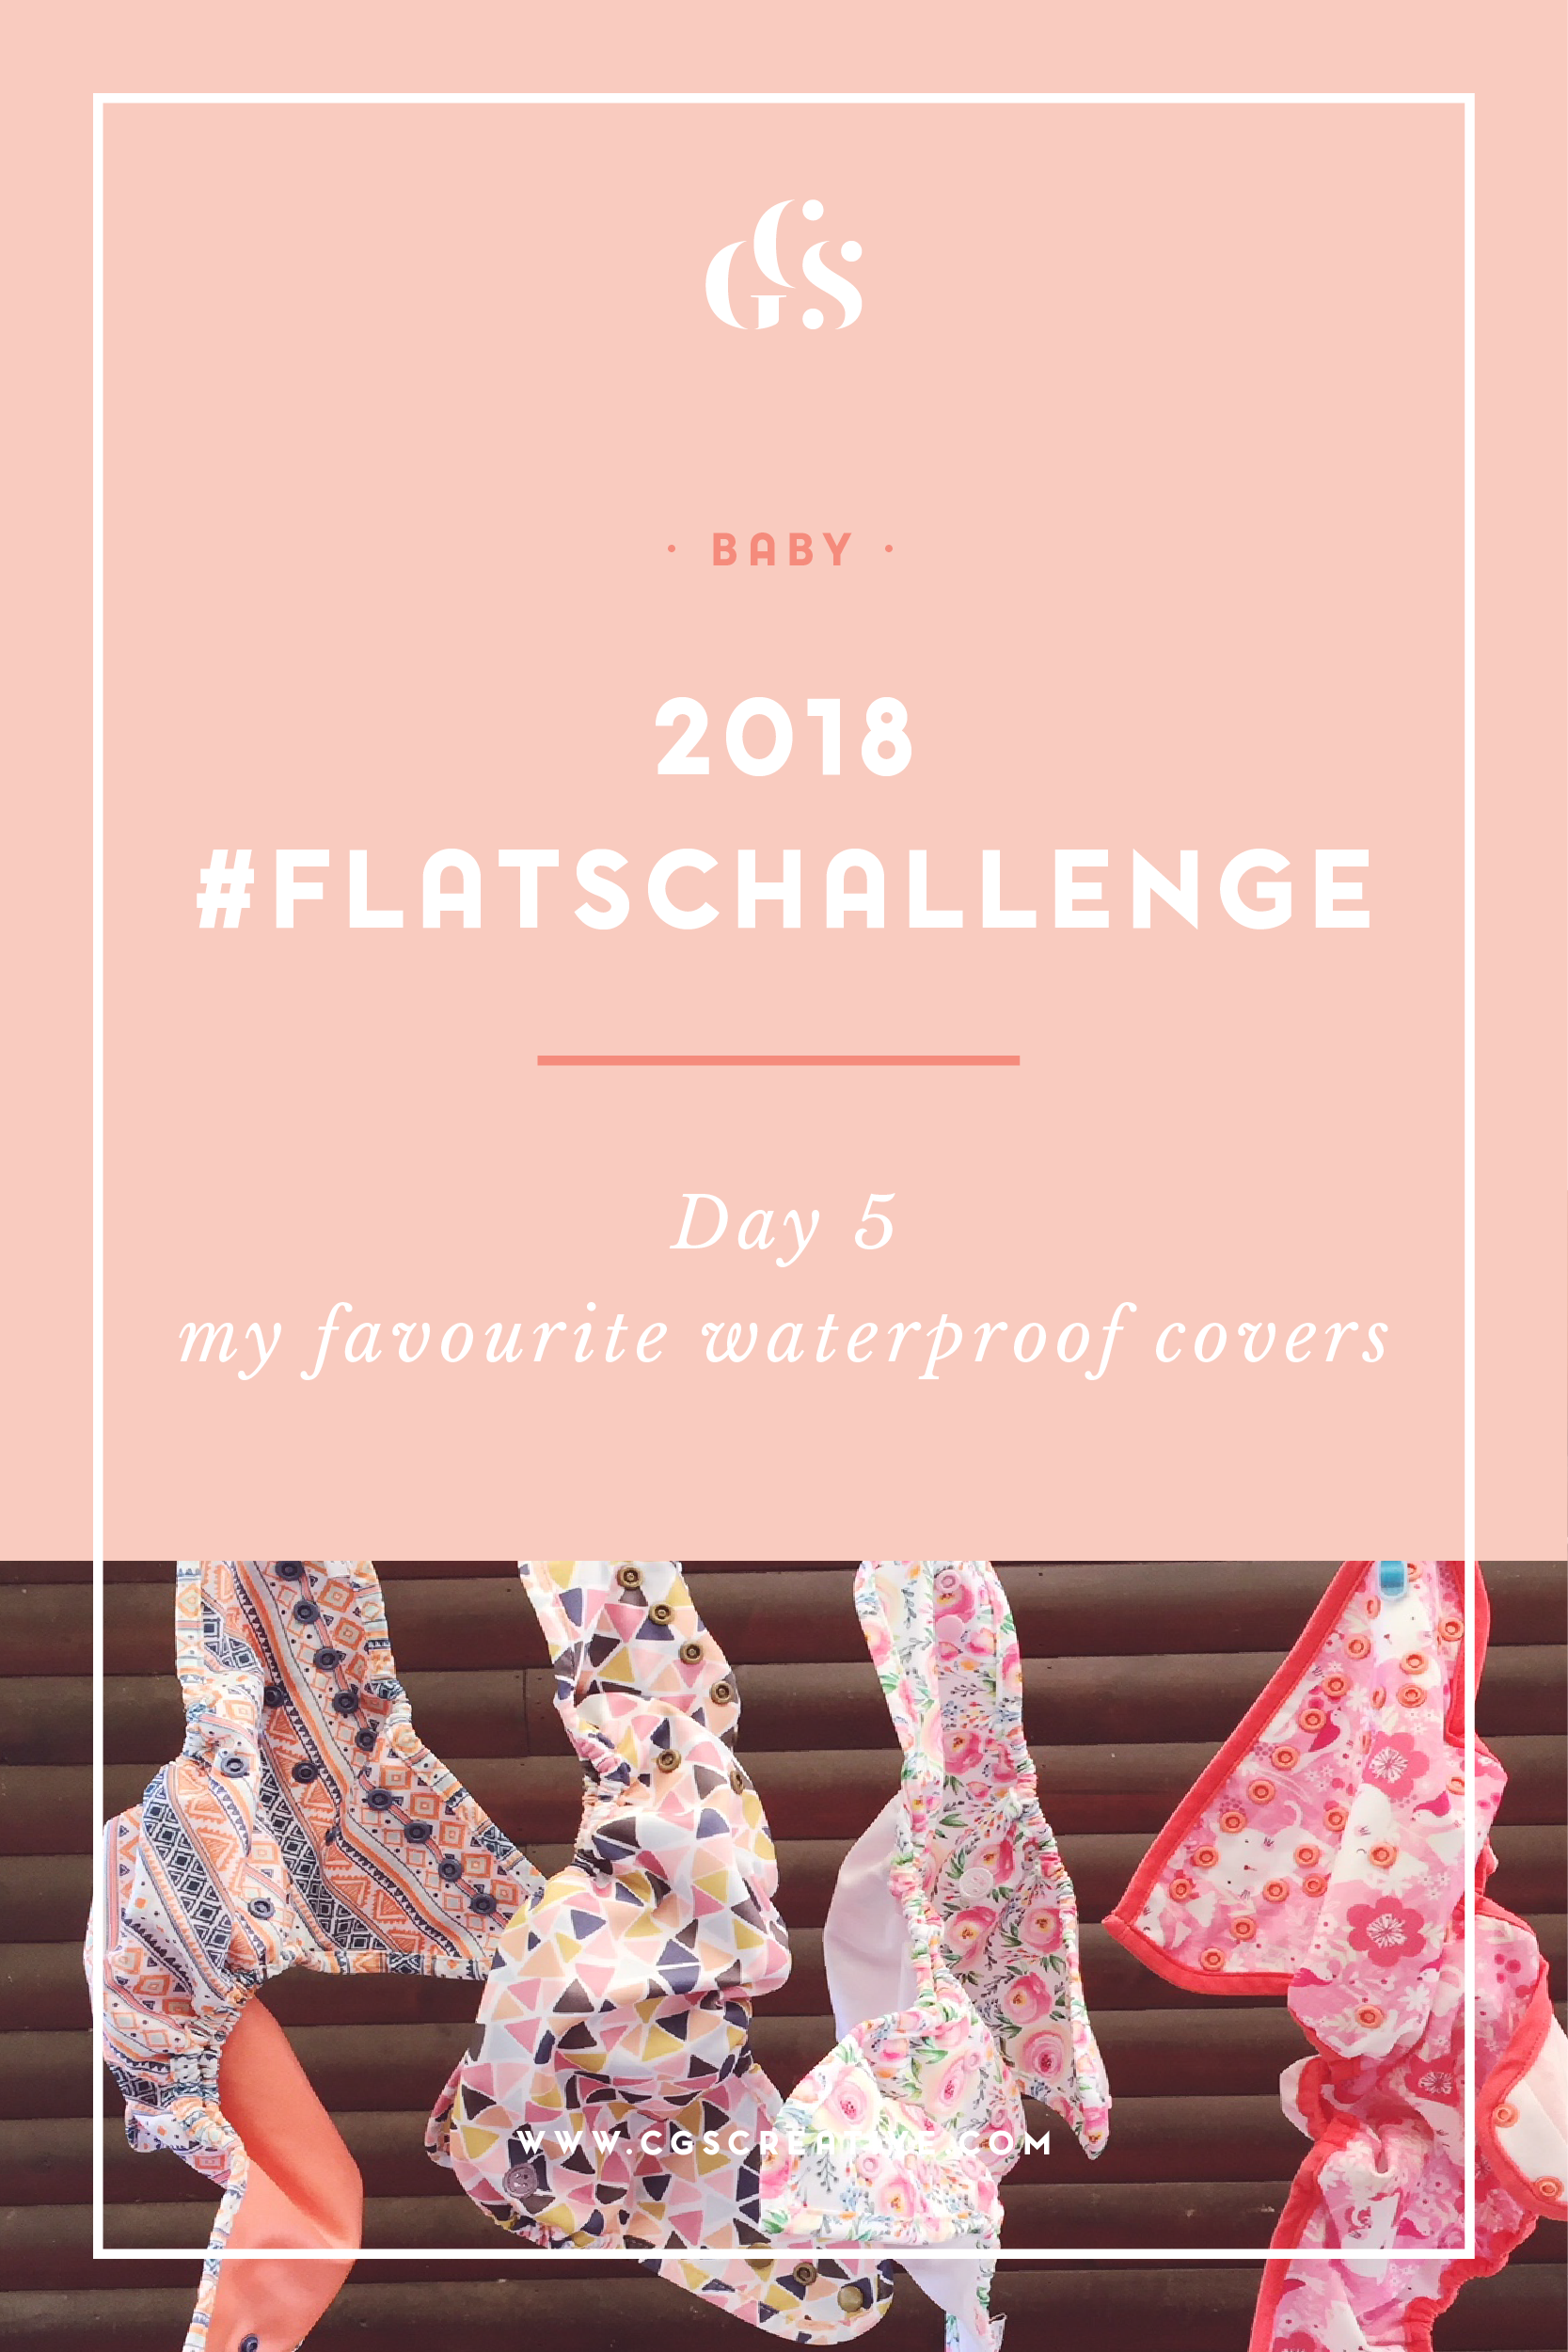 #FlatsChallenge Handwashing Cloth Nappies South Africa Waterproof Covers CityGirlSearching Blog-01.png